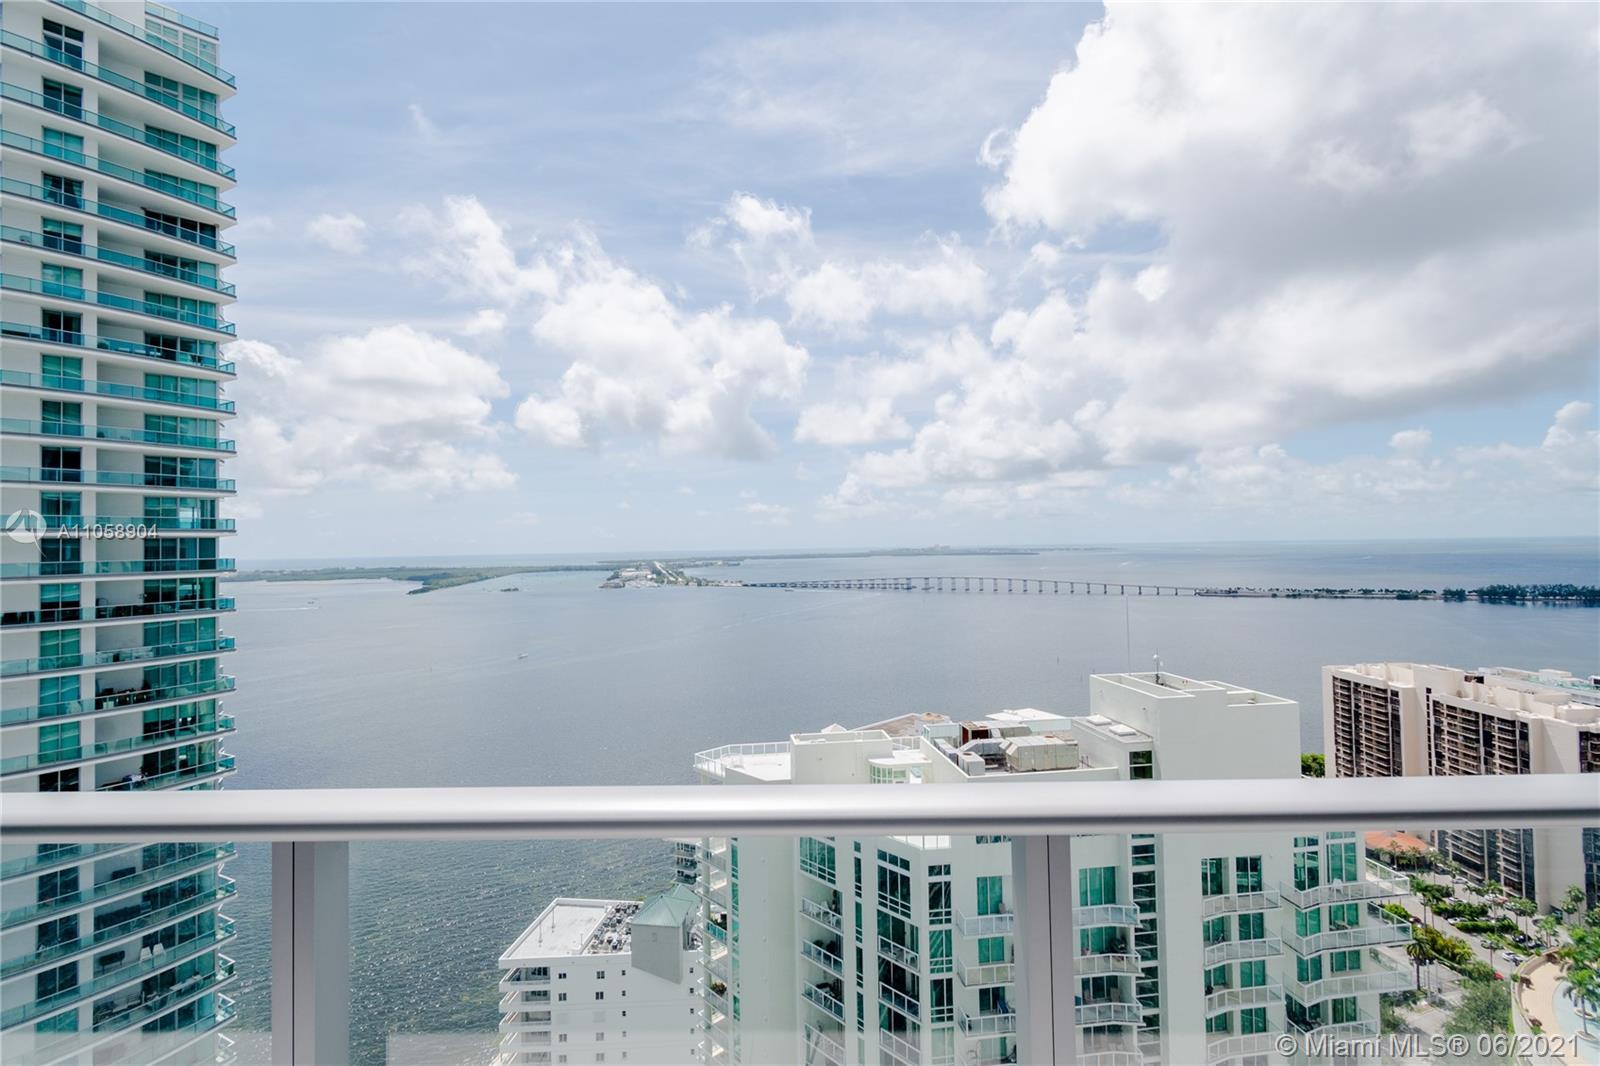 WATER VIEW THROUGHOUT THE APARTMENT! Beautiful condo 2+den and 2 bathrooms. White Porcelain flooring